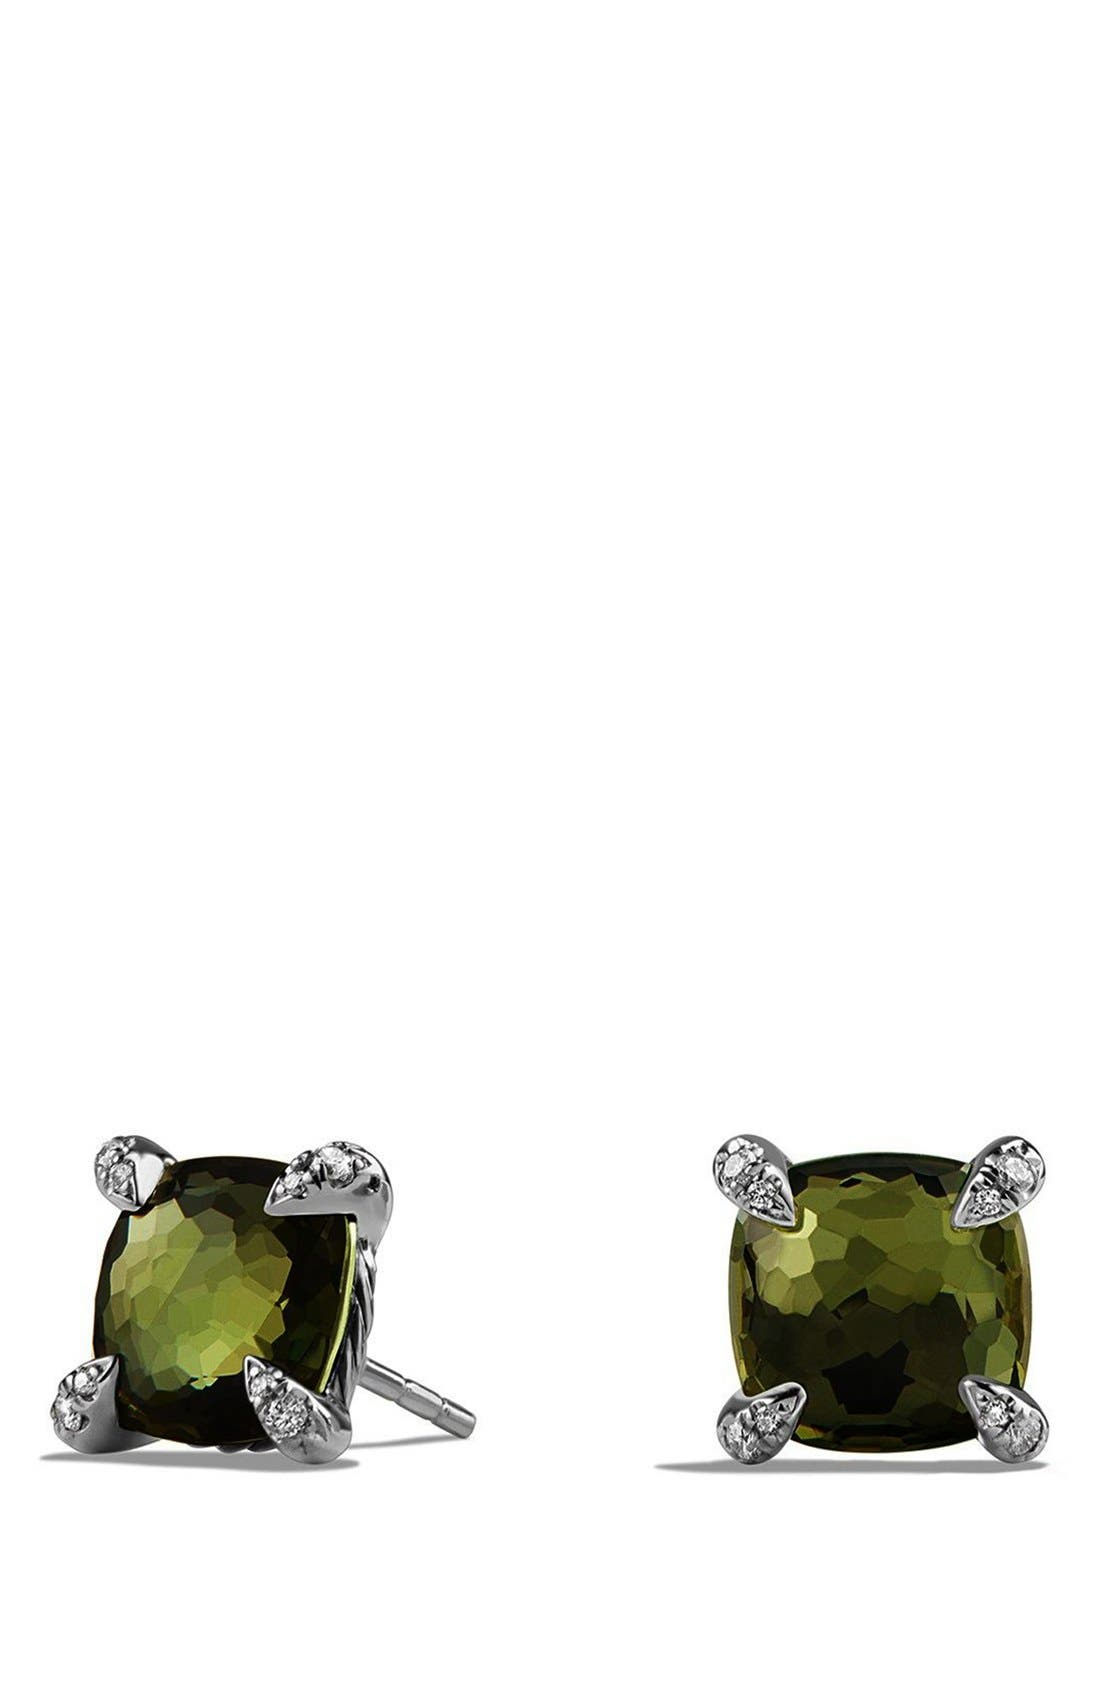 'Châtelaine' Earrings with Semiprecious Stones and Diamonds,                             Main thumbnail 1, color,                             SILVER/ CITRINE/ HEMATINE